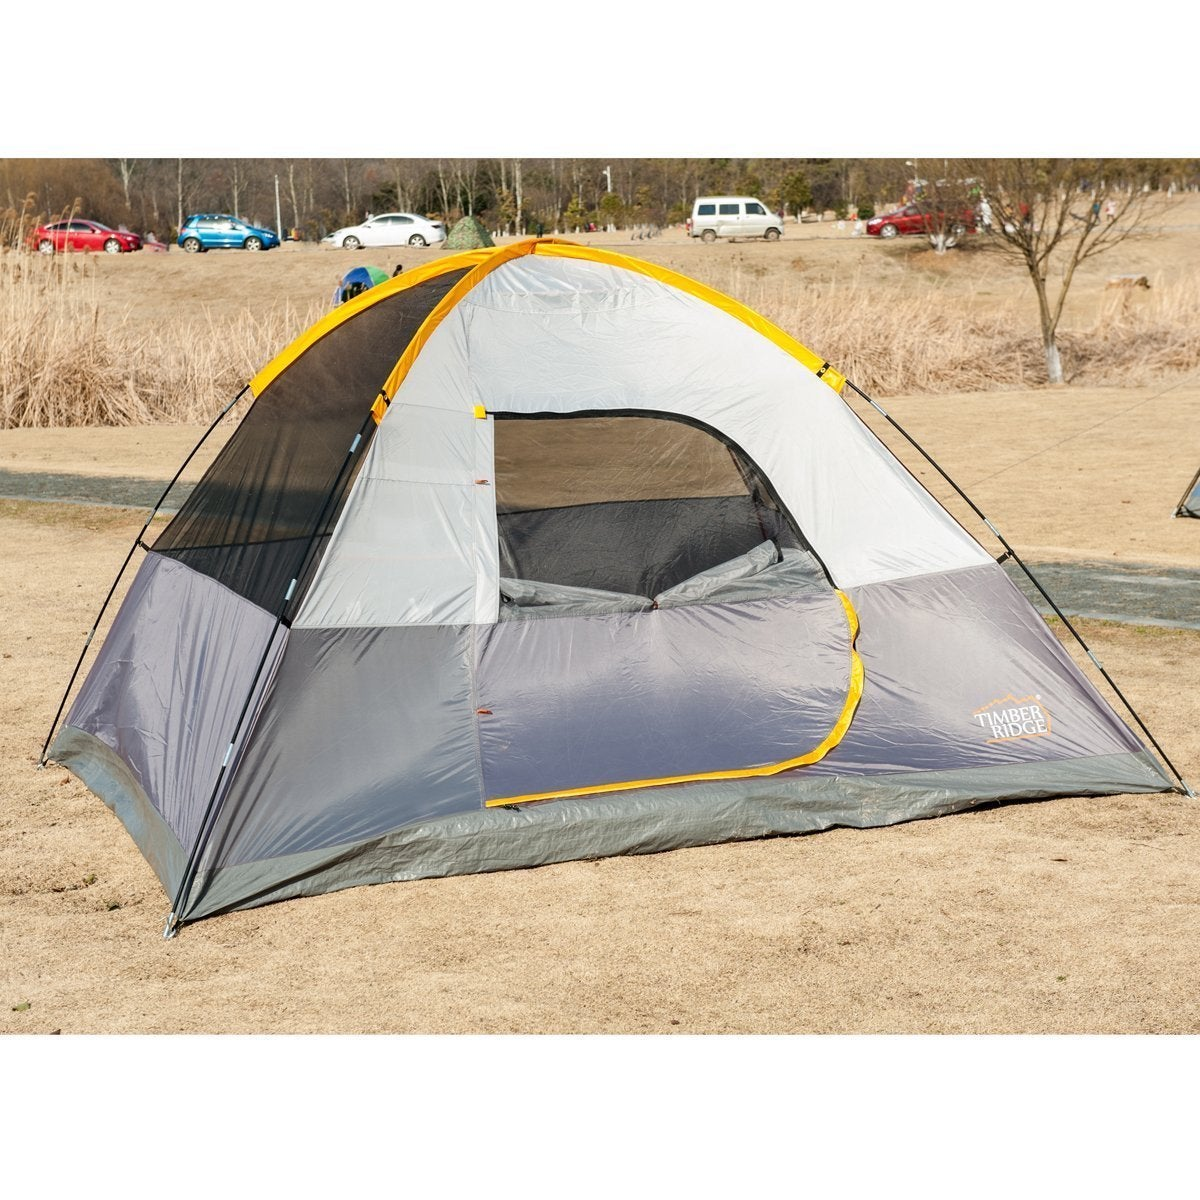 TimberRidge 3 Seasons D-Shape Door Family C&ing Dome Tent with Carry Bag. - Free Shipping Today - Overstock.com - 19147397  sc 1 st  Overstock.com : timber ridge tent - memphite.com